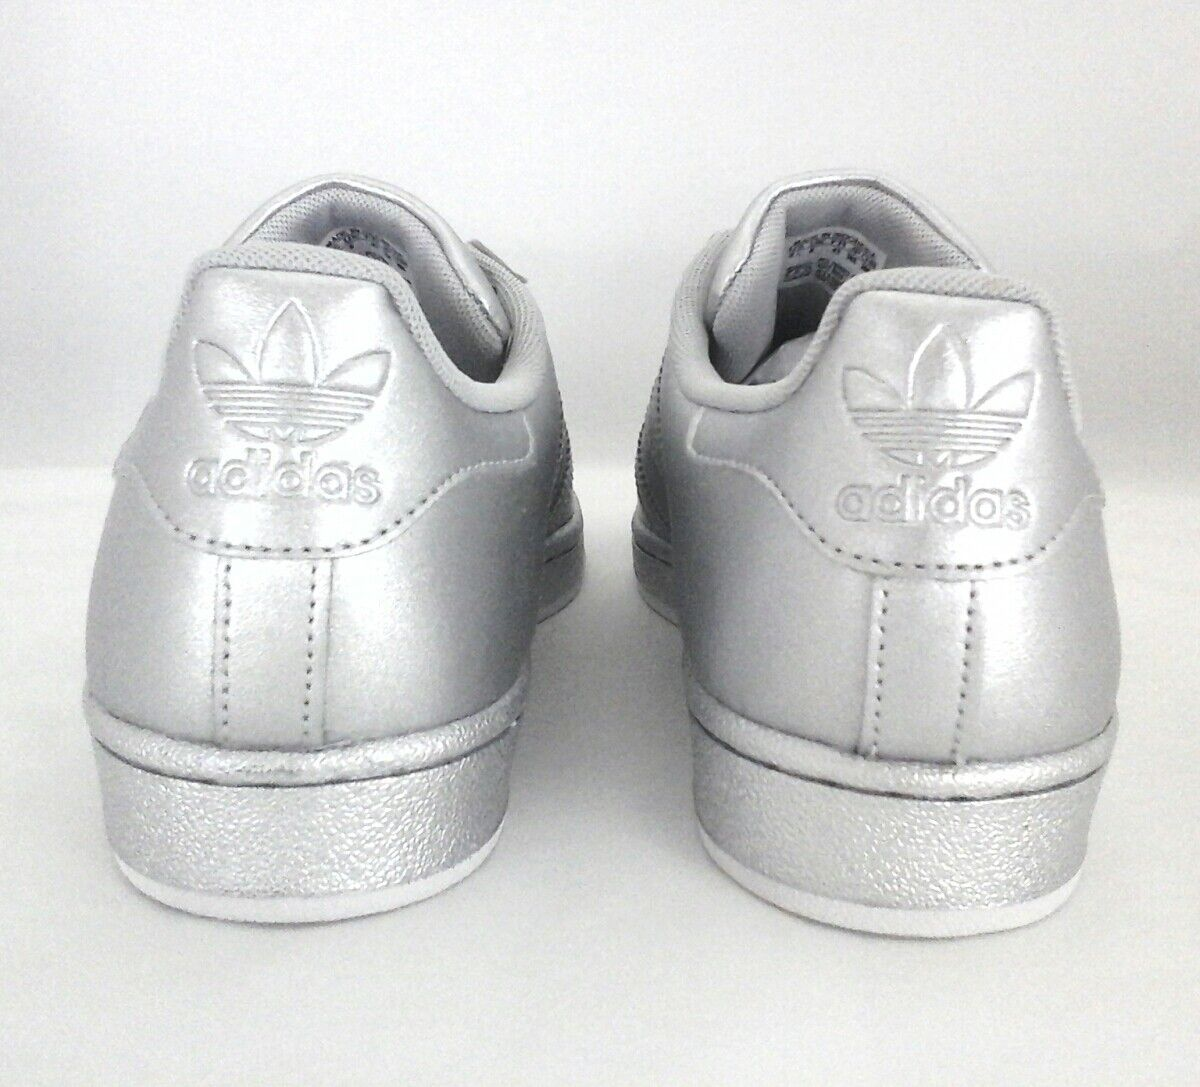 ADIDAS ORIGINALS SUPERSTAR Clamshell Metallic RARE Schuhes Damenschuhe SILVER Metallic Clamshell BB8139 6db78c